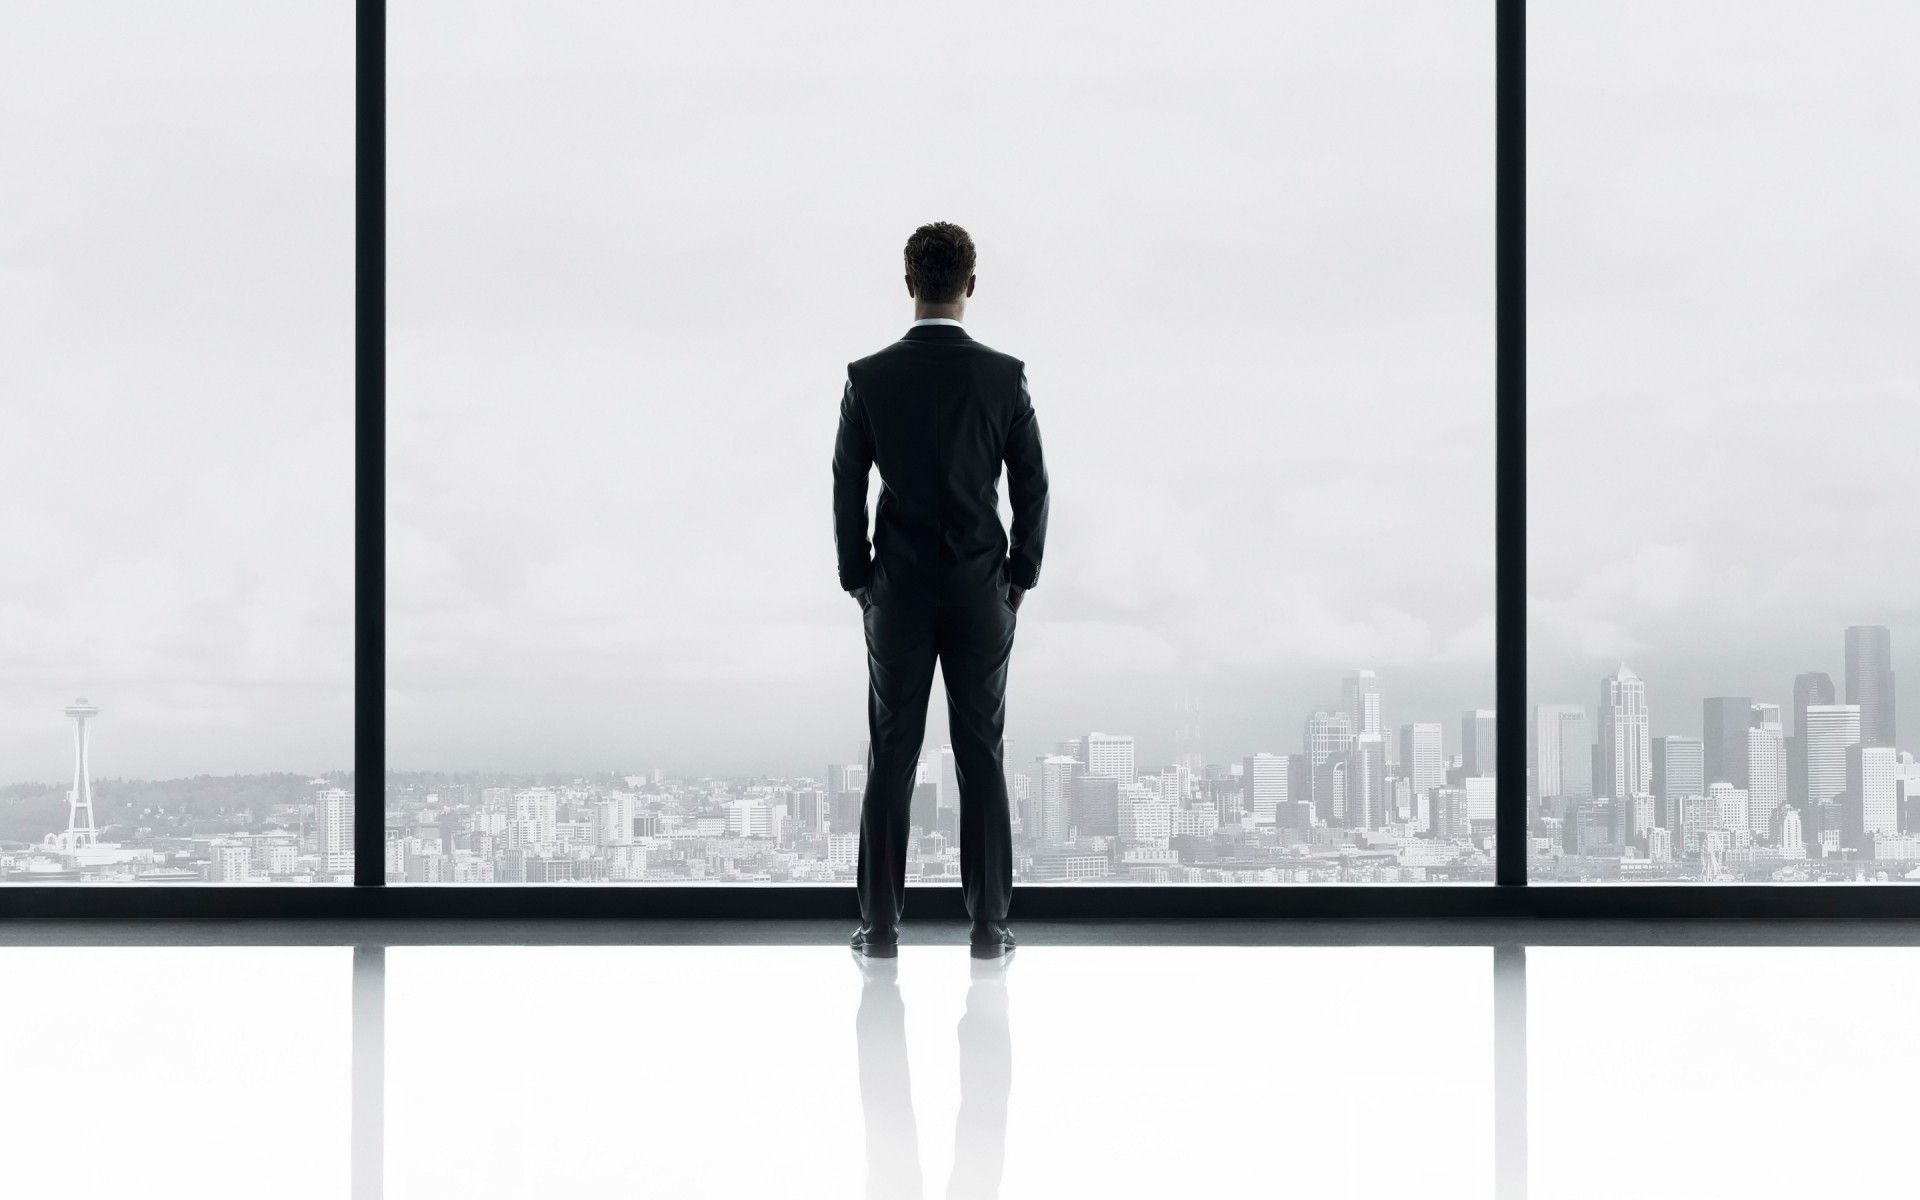 Top Free Business Backgrounds